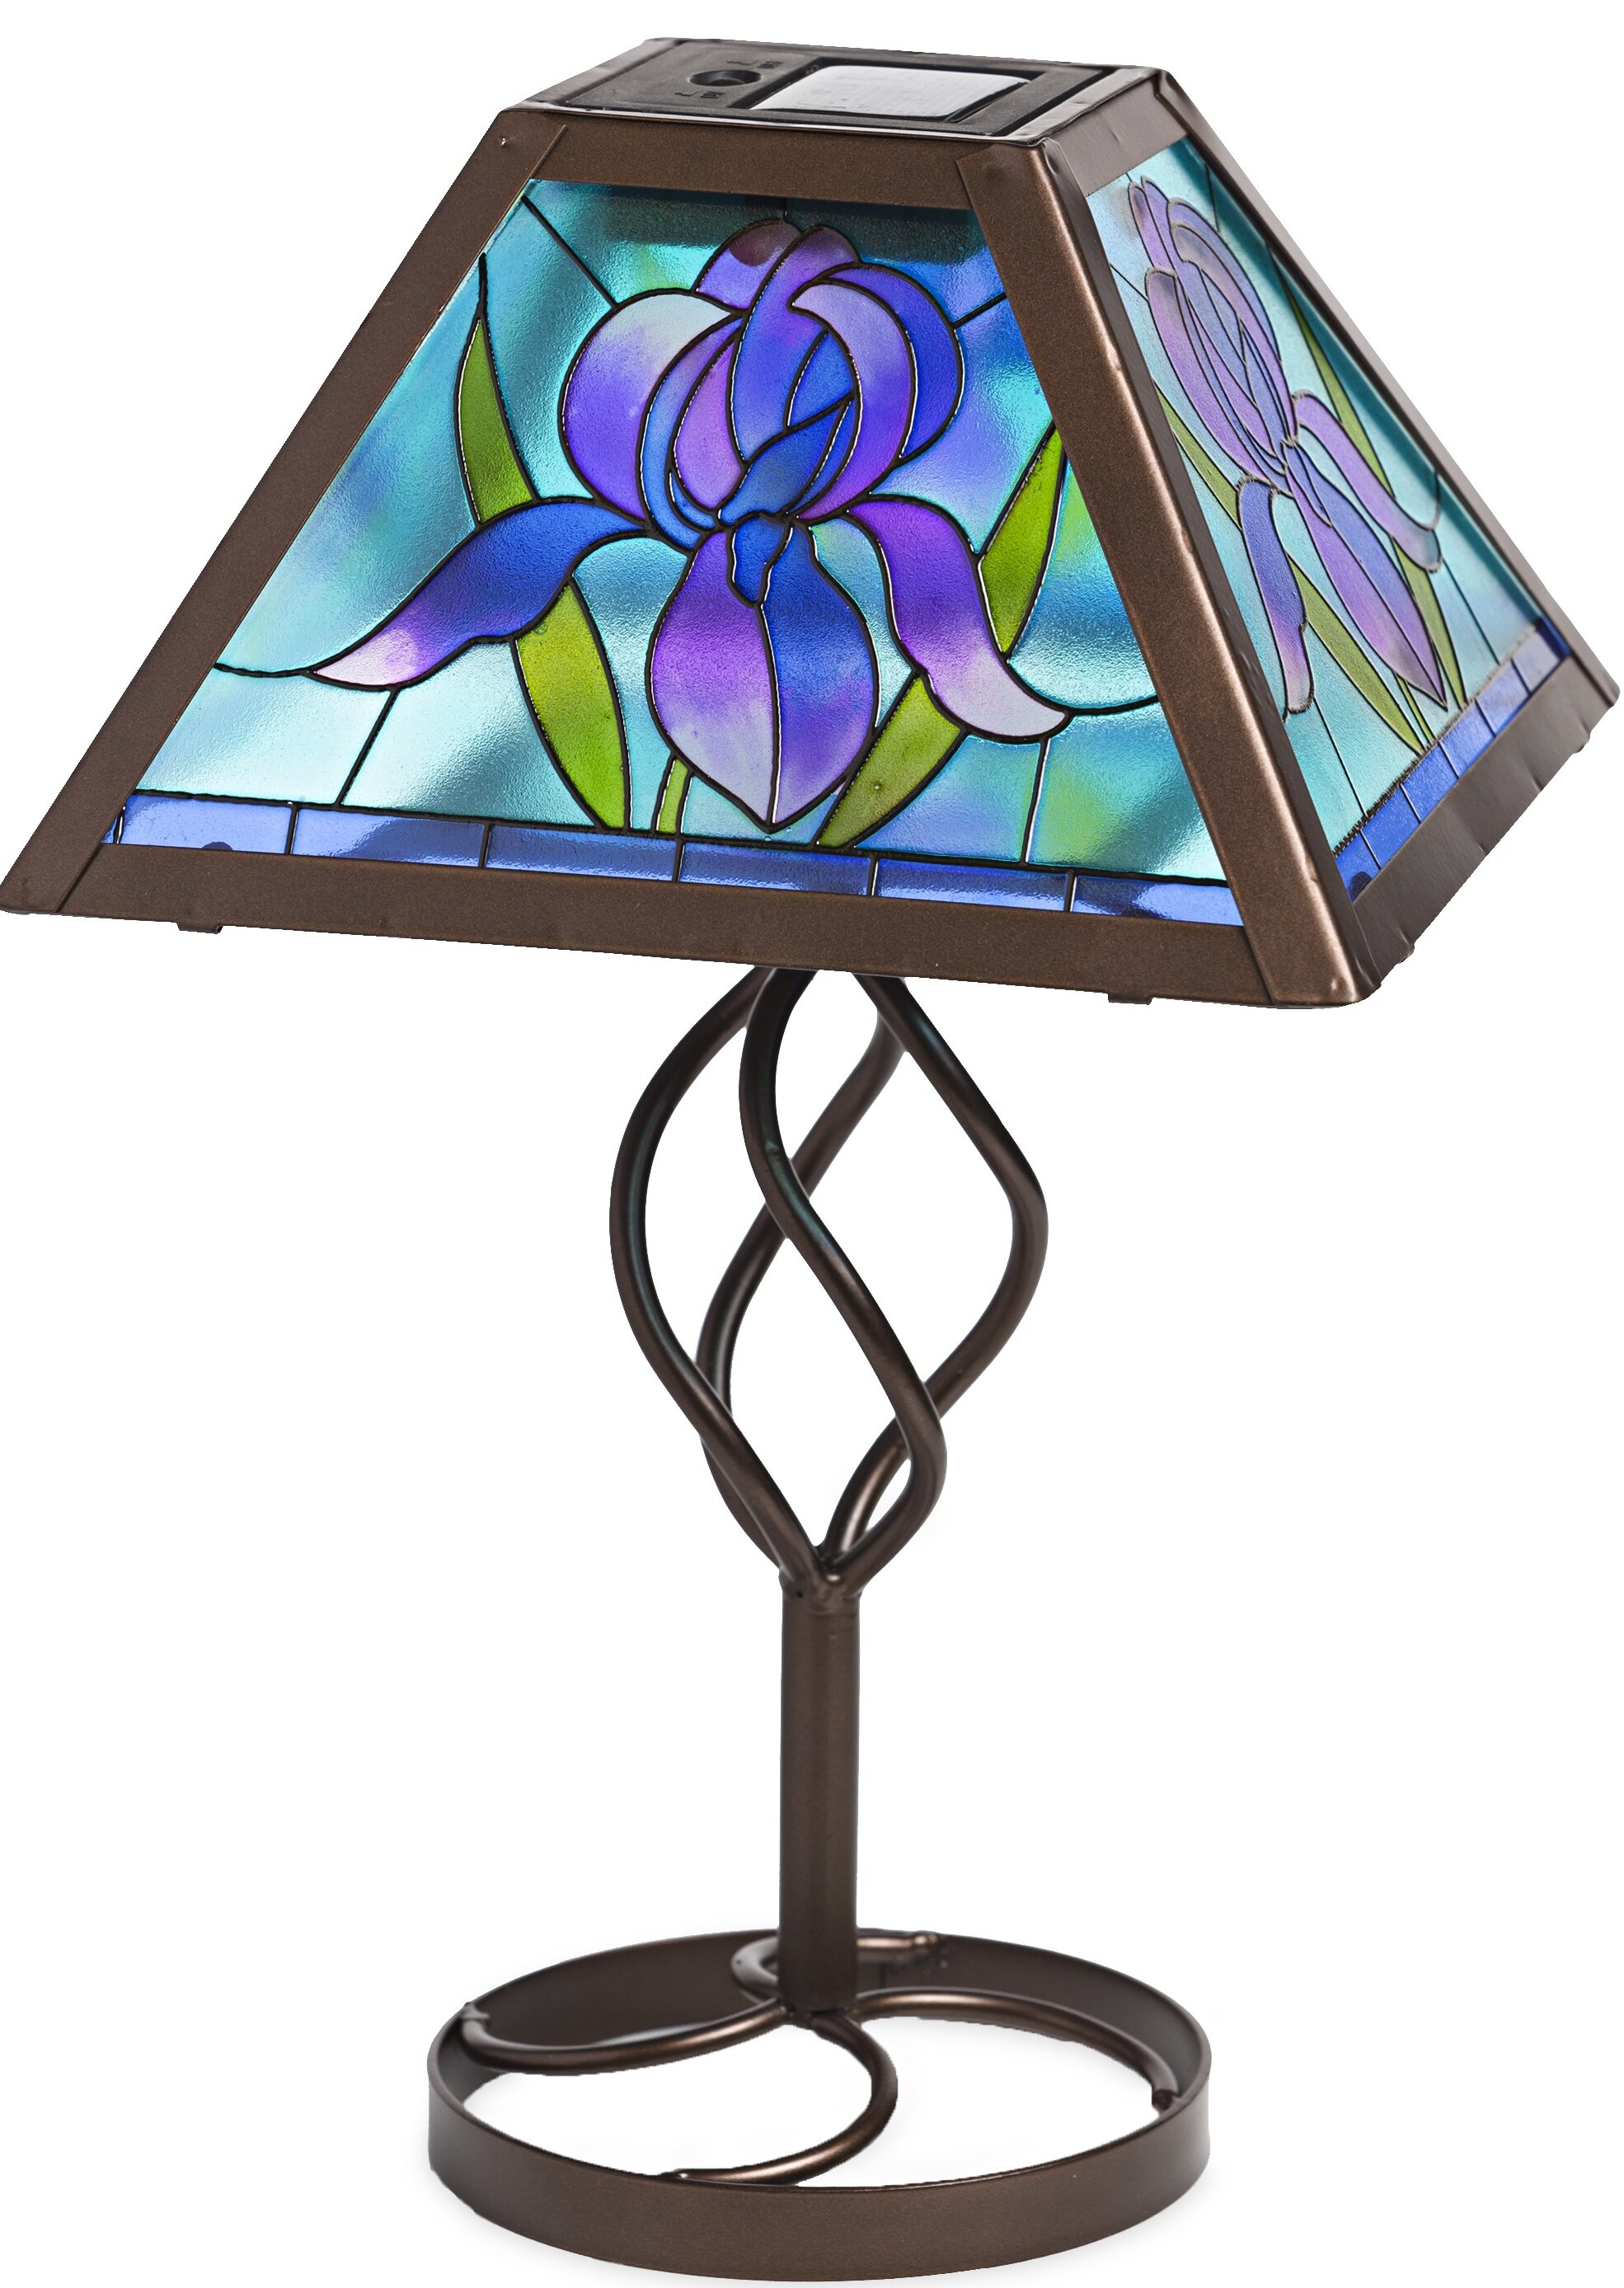 Plow Hearth Tiffany Style Flower Solar Outdoor 12 75 Table Lamp Reviews Wayfair